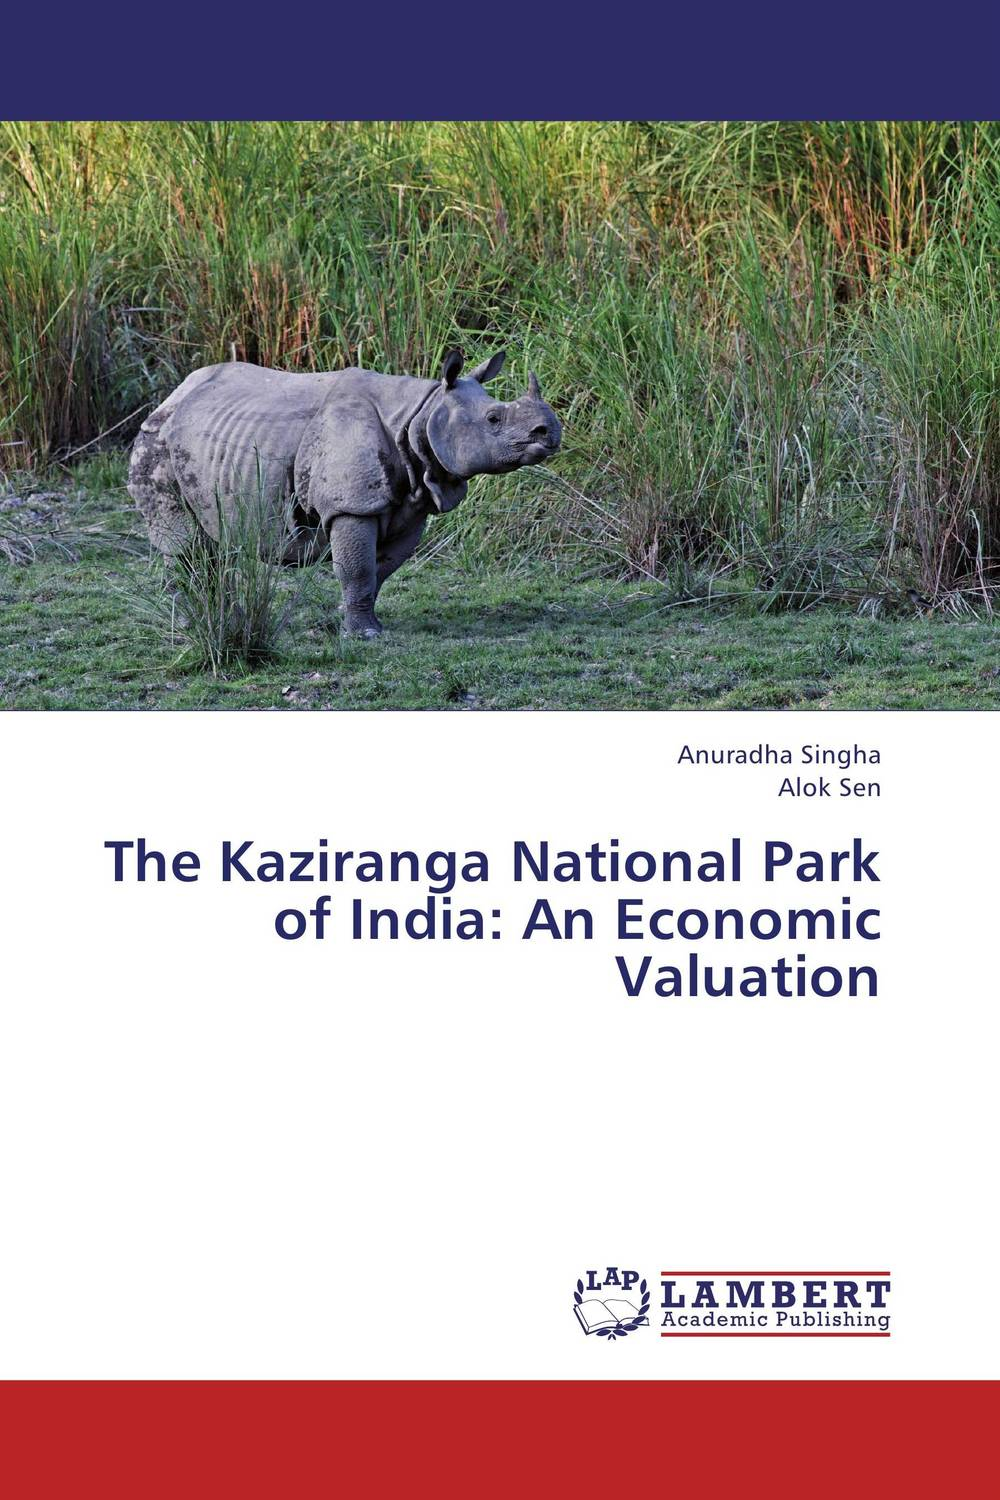 The Kaziranga National Park of India: An Economic Valuation environmental protection in india role of supreme court